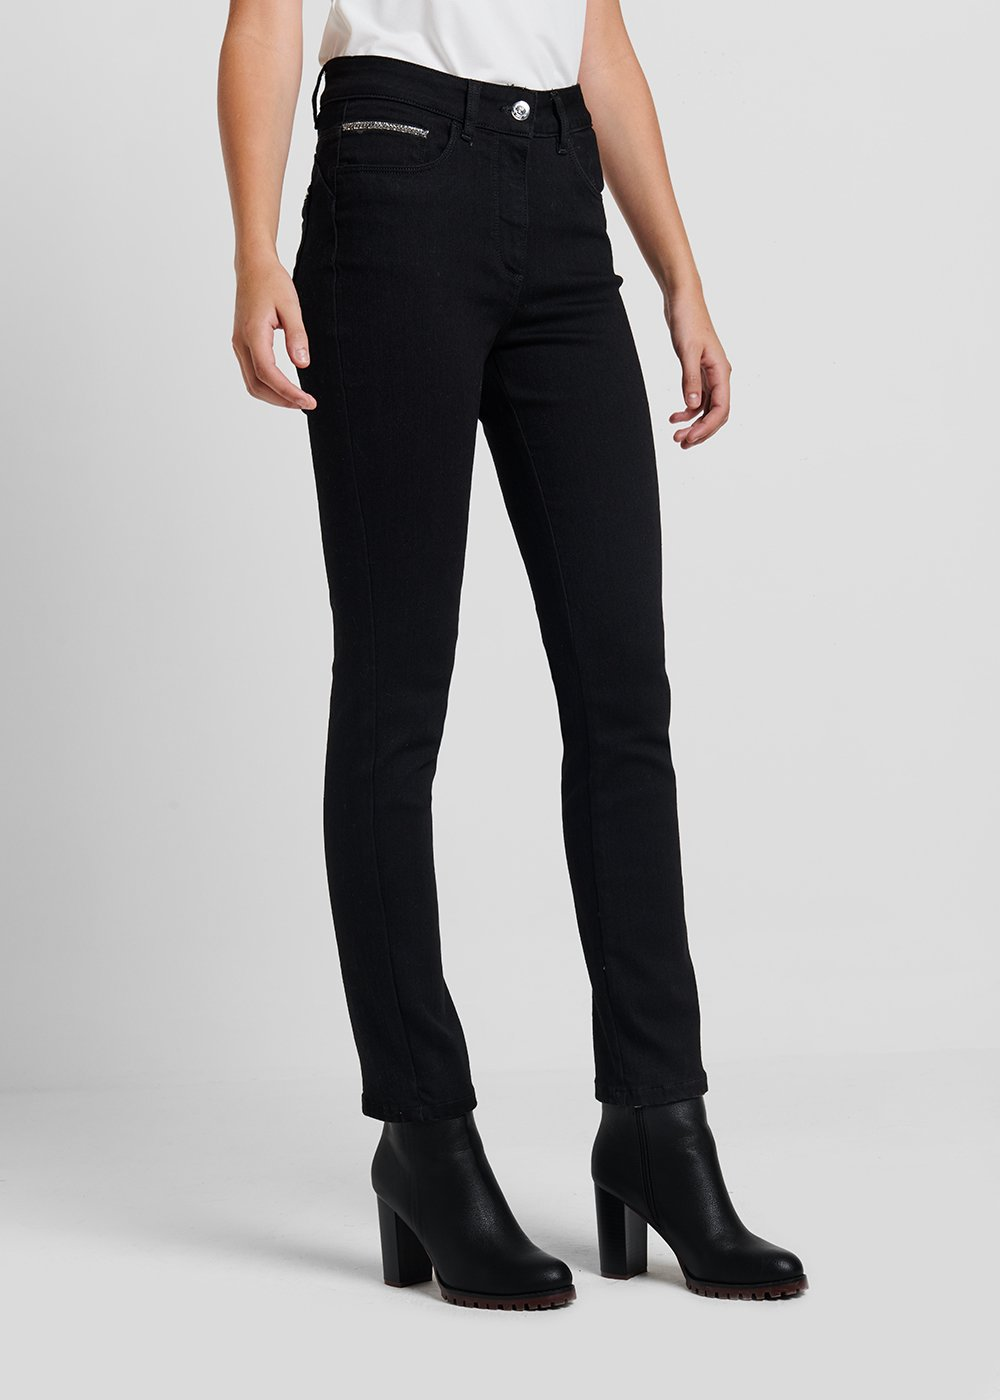 5 - pocket slim leg denim - Black Denim - Woman